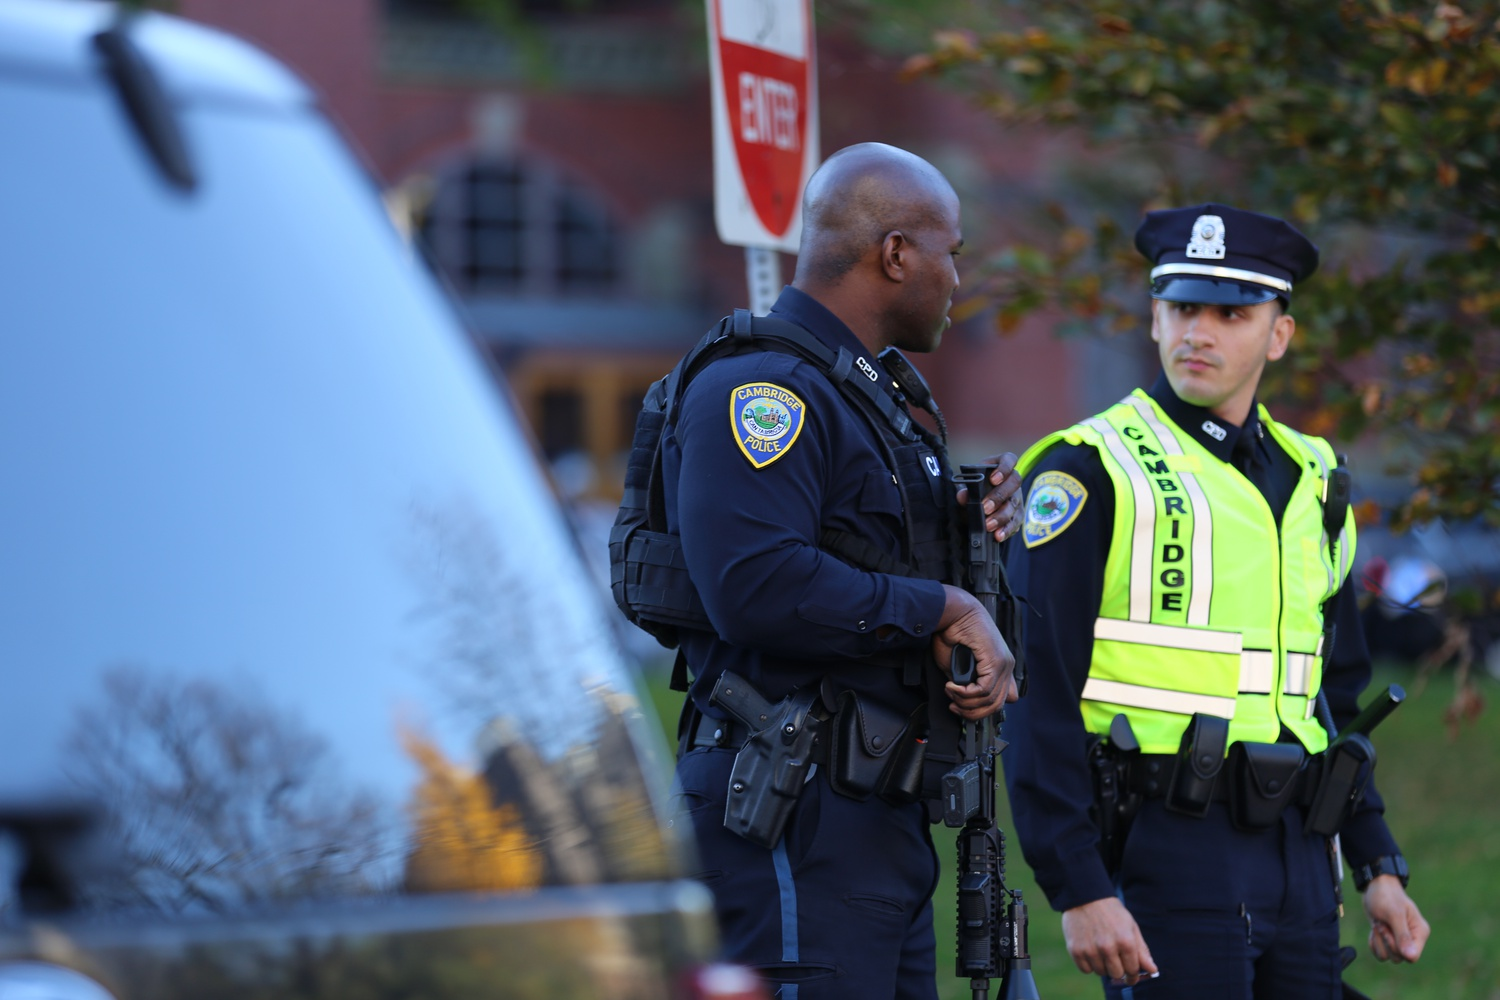 The Cambridge Police Department committed earlier this year to reduce its inventory of long guns and less-than-lethal weapons by 20 percent and 30 percent, respectively.